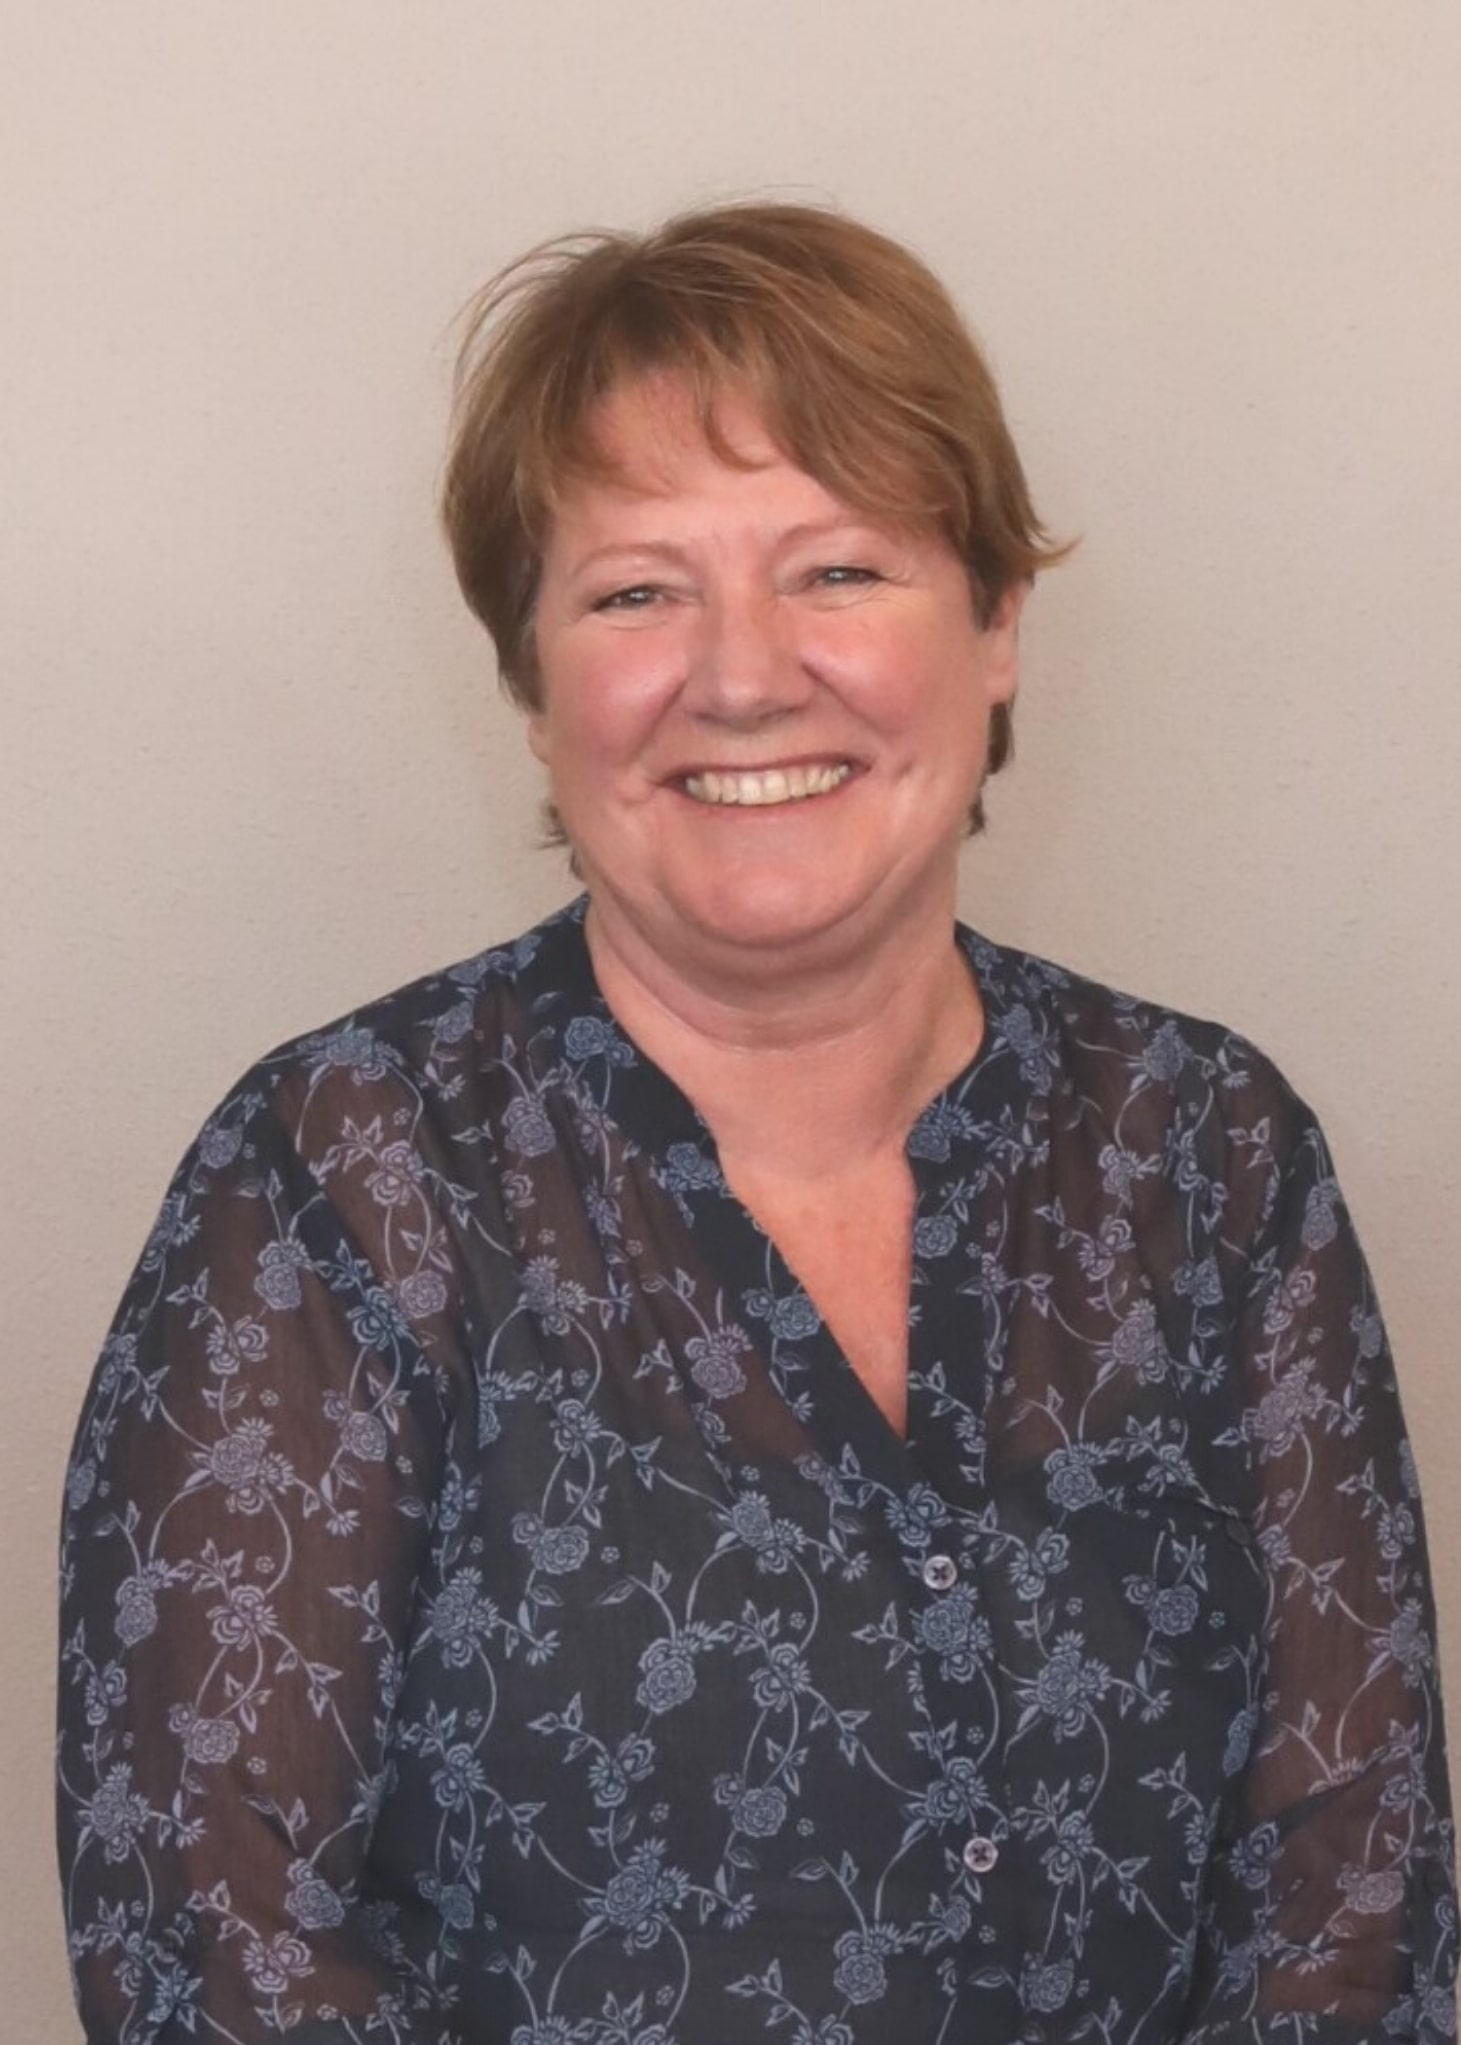 Lyn Gray, Windermere, Real estate, Whidbey Island, Homes, Buy, Sell, Invest, Freeland, trusted realtor